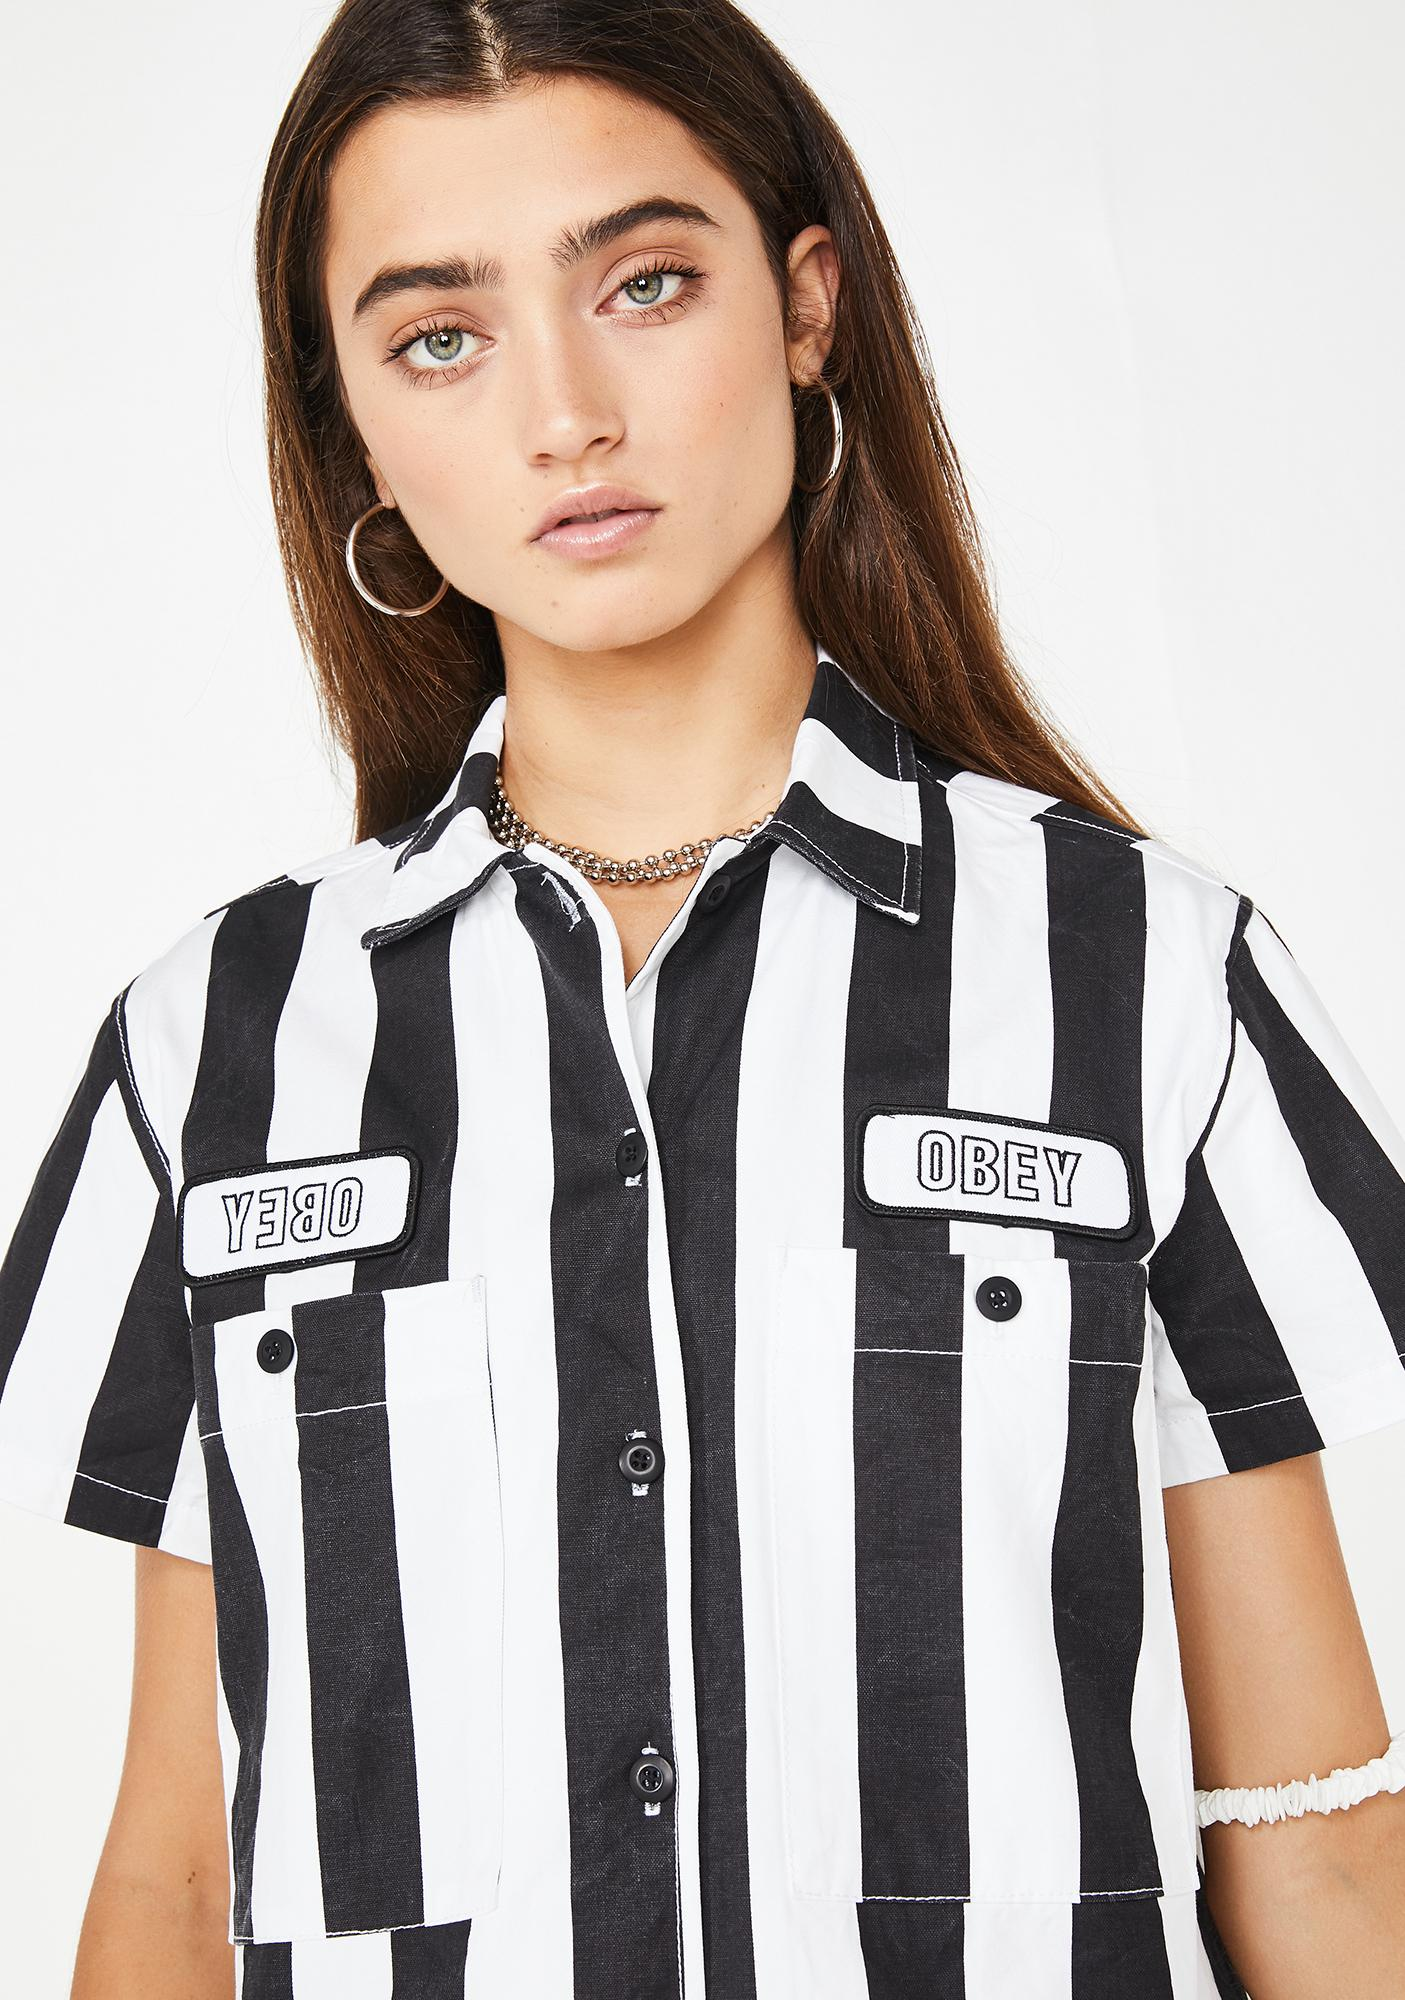 Obey Onyx Static Work Shirt